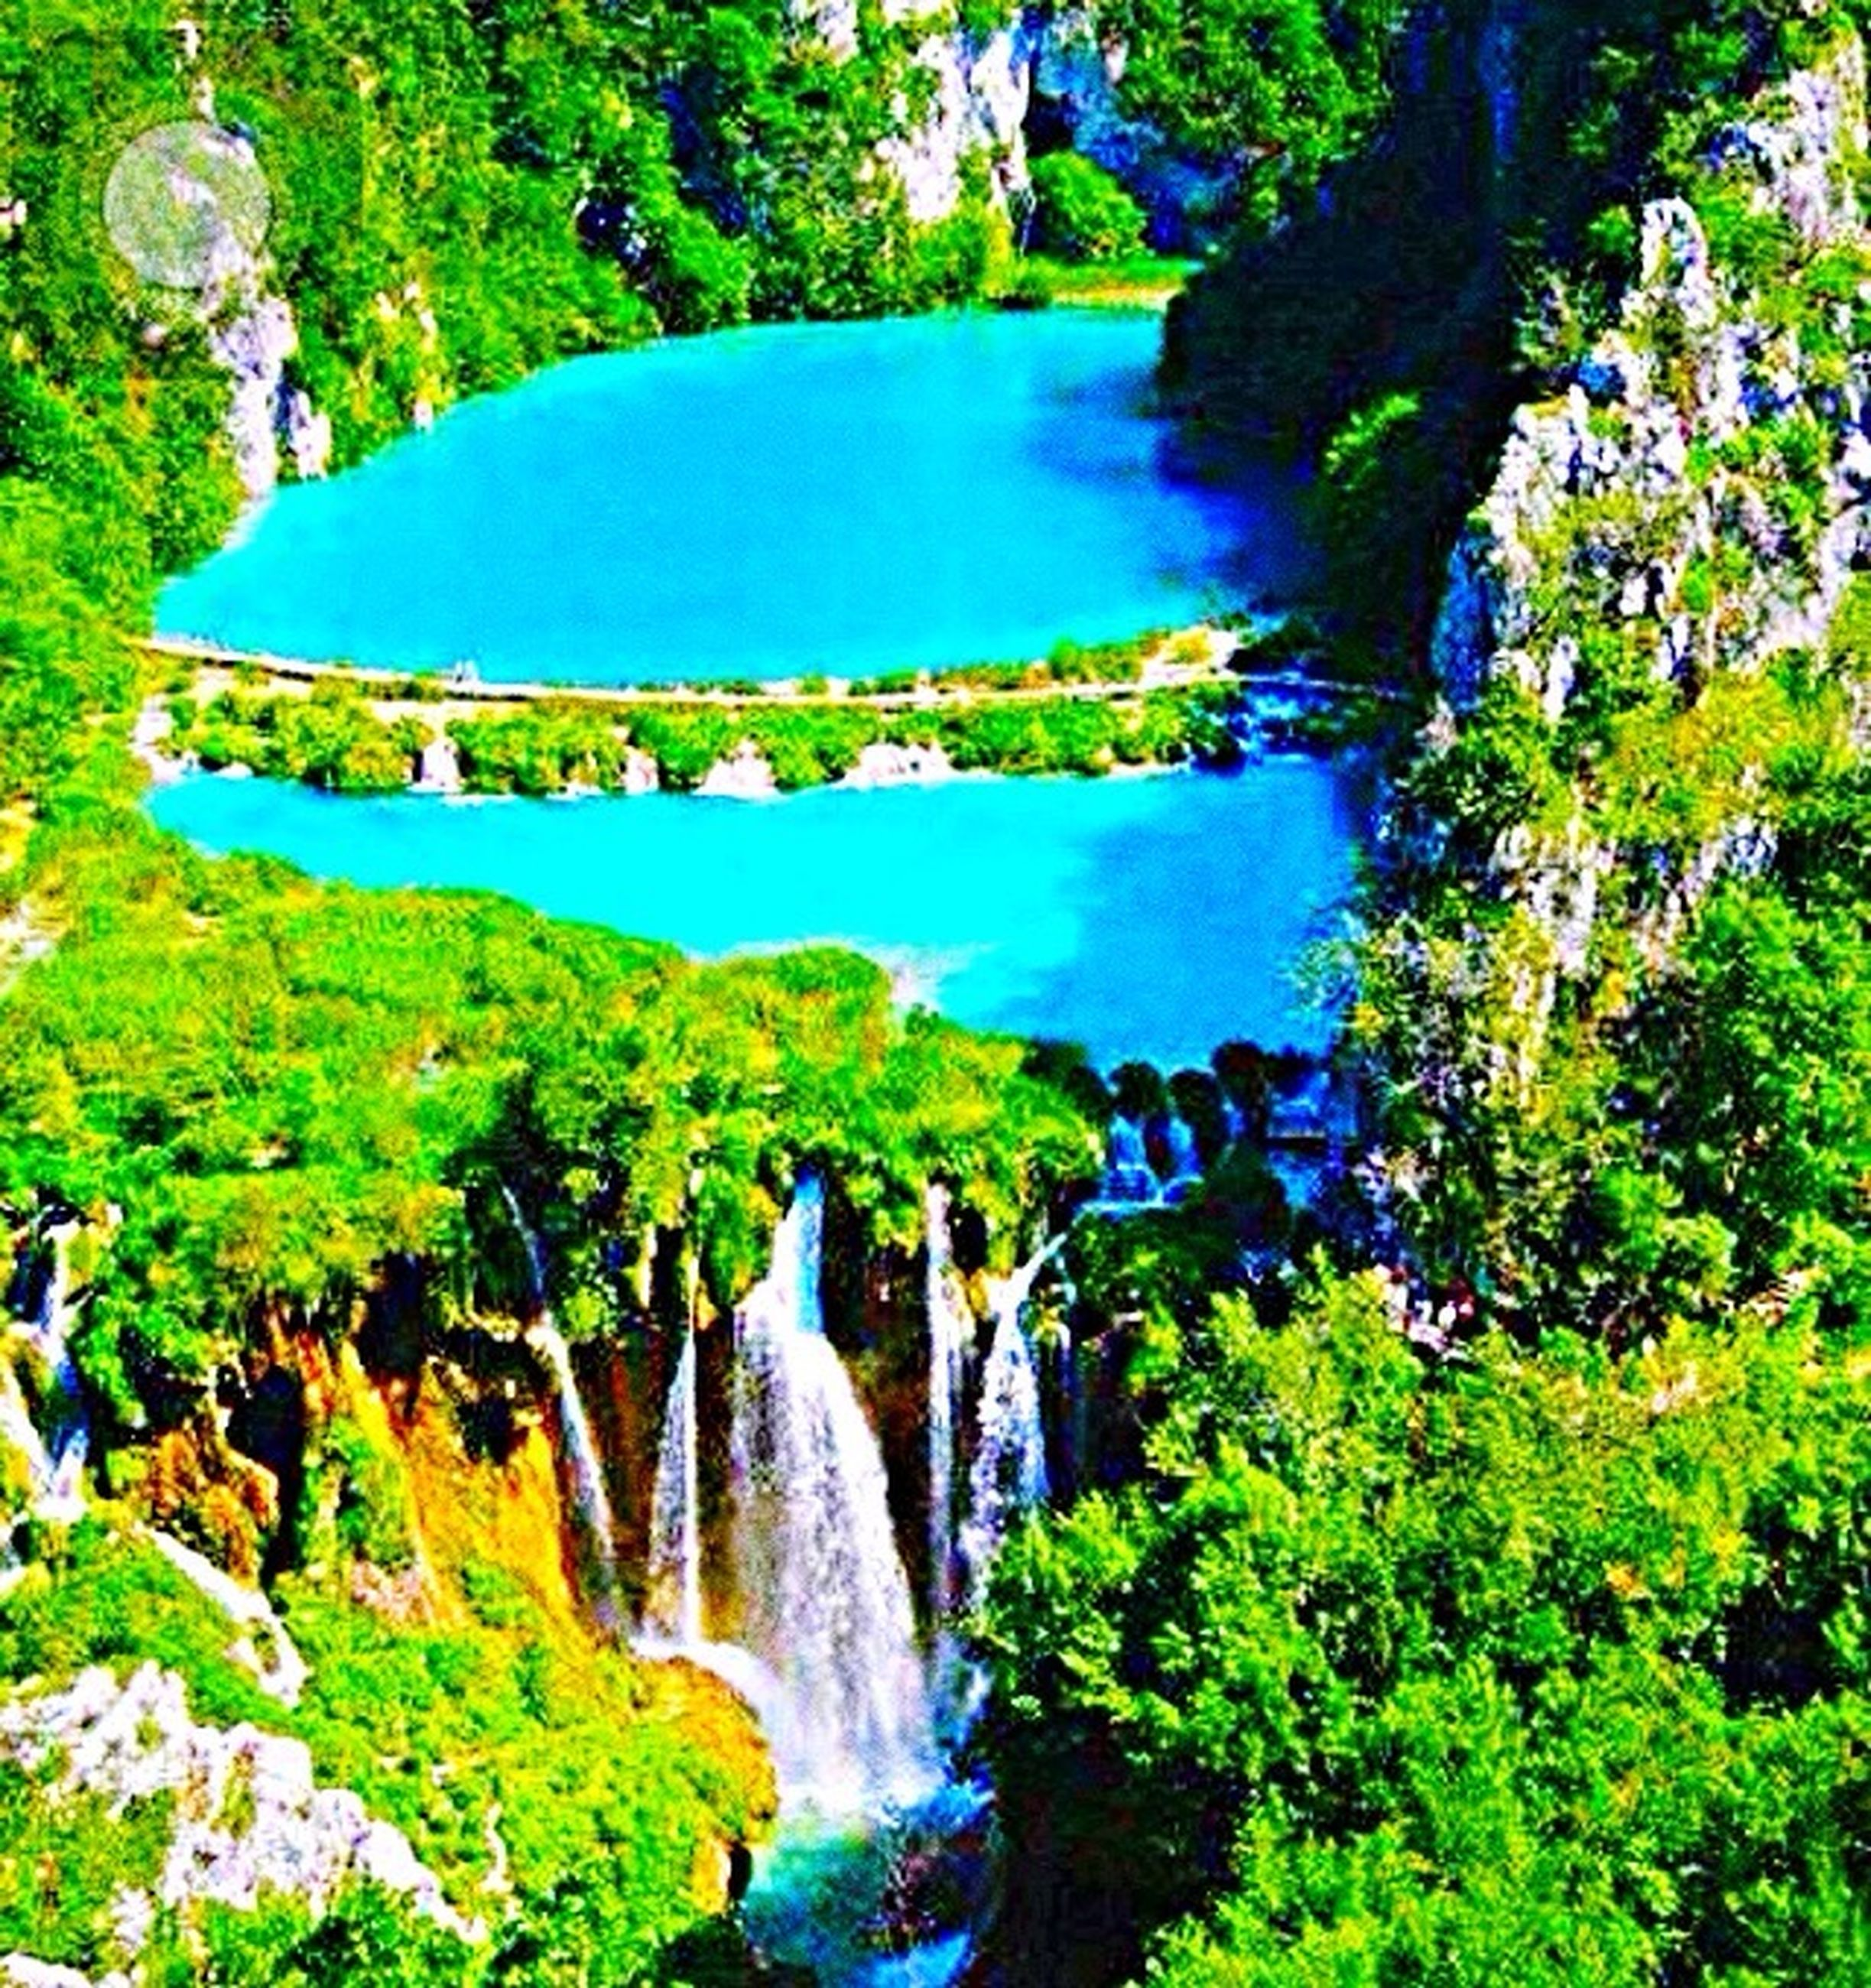 water, waterfall, motion, scenics, flowing water, flowing, tree, rock - object, stream, beauty in nature, nature, green color, tranquil scene, day, formal garden, growth, green, non-urban scene, outdoors, lush foliage, tranquility, falling water, no people, power in nature, rock formation